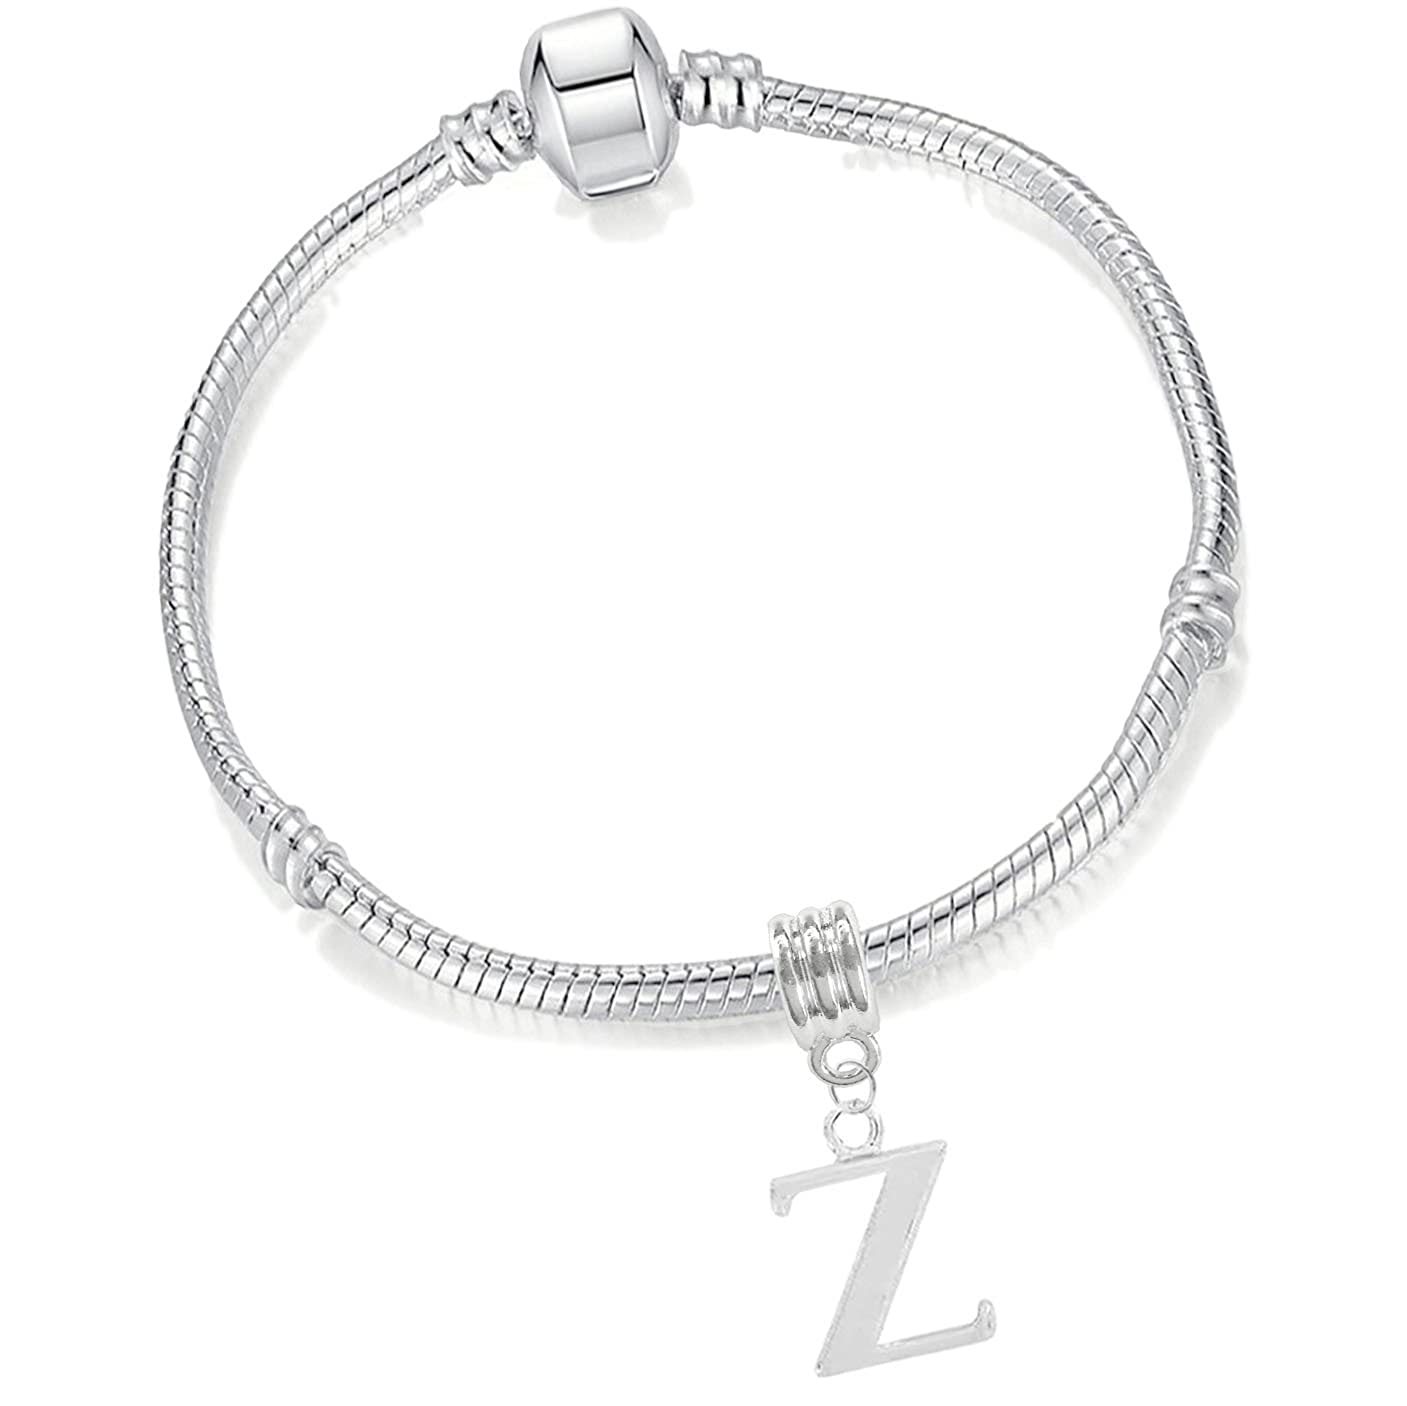 Girls 17cm Silver Plated Starter Charm Bracelet with Alphabet Letter Name Initial Charm Buddy ®